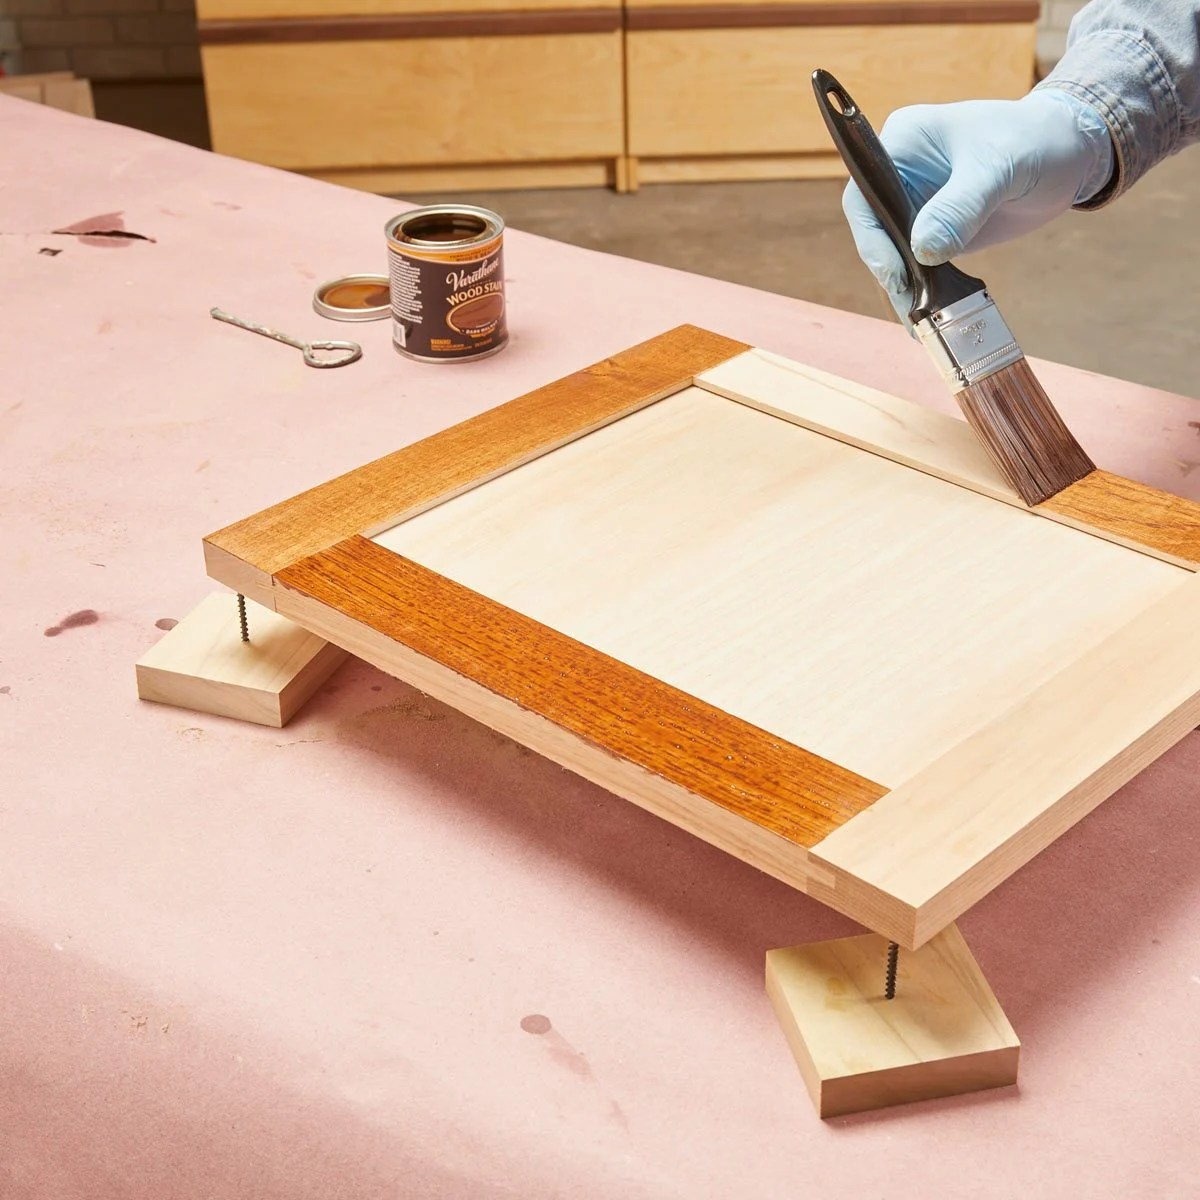 18 Handy Hints For Wood Finishing Family Handyman